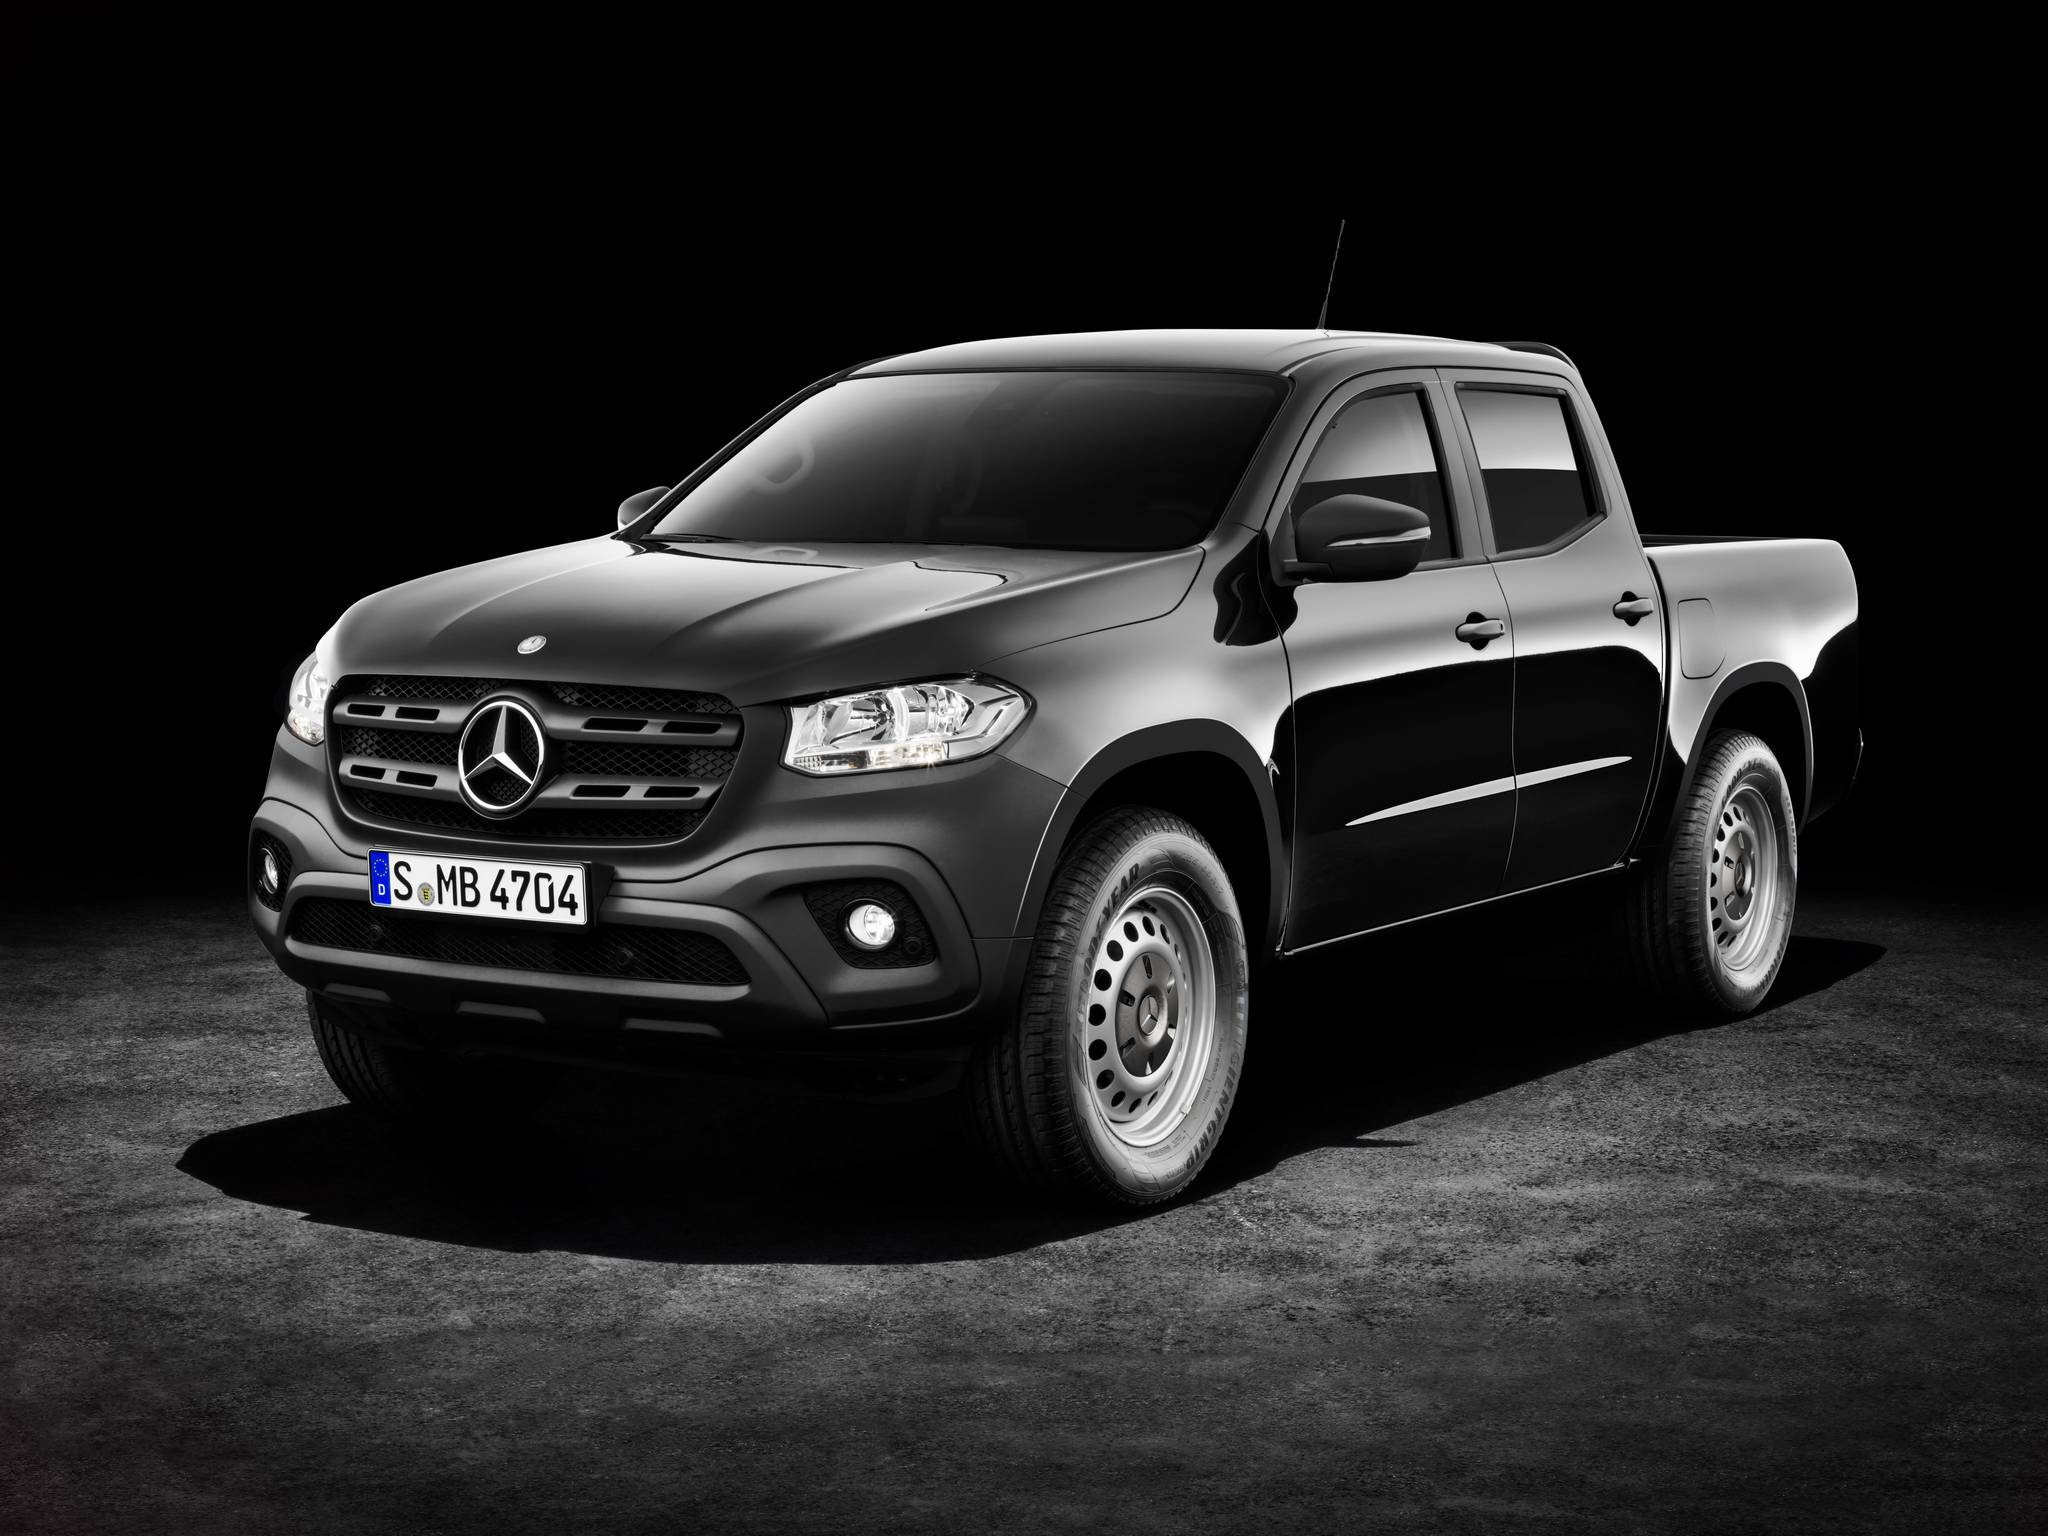 2018 mercedes benz x class first impression gtspirit for Price of a new mercedes benz